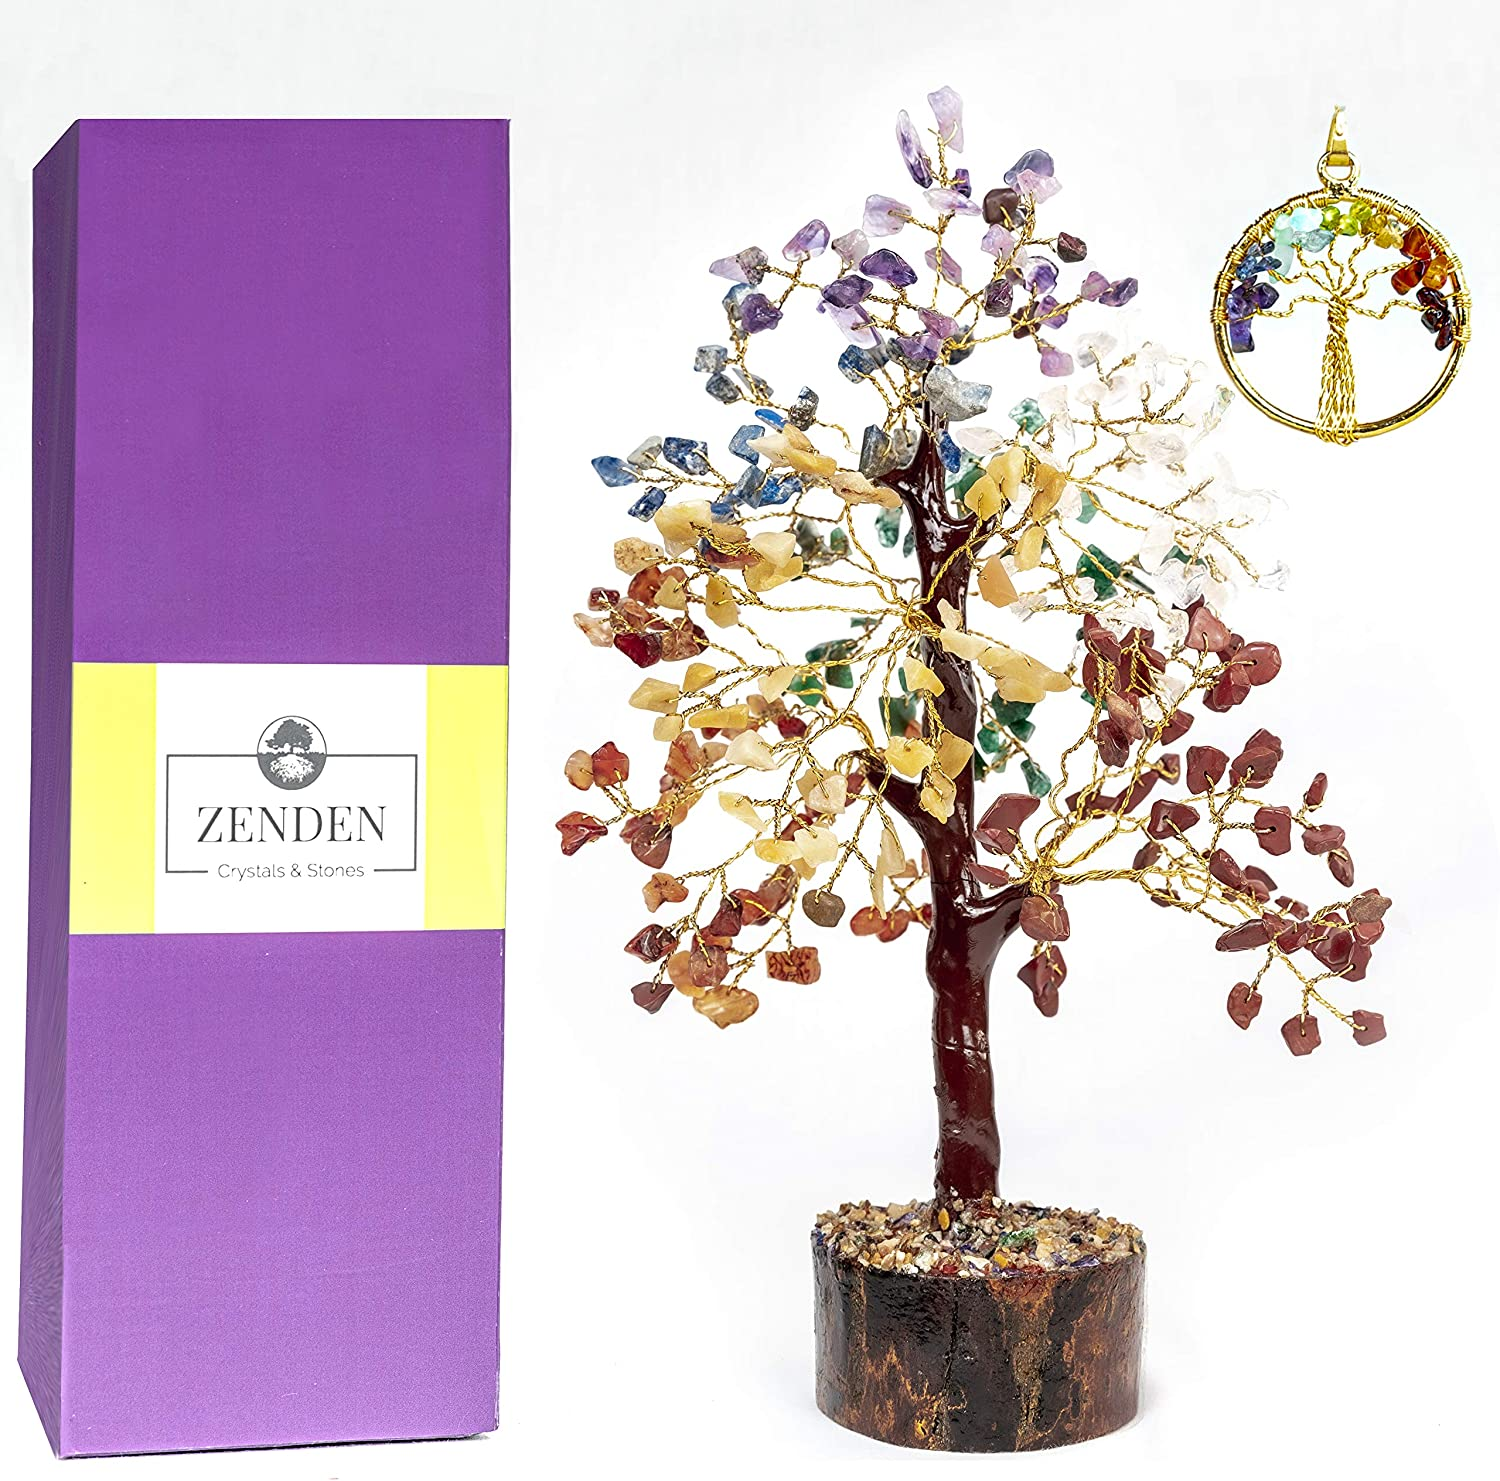 ZENDEN Seven Chakra Natural Healing Gemstone Crystal Bonsai Fortune Money Tree for Good Luck, Wealth & Prosperity-Home Office Decor Spiritual Gift (with Golden Wire and 300 Beads) Size 10-12 Inches